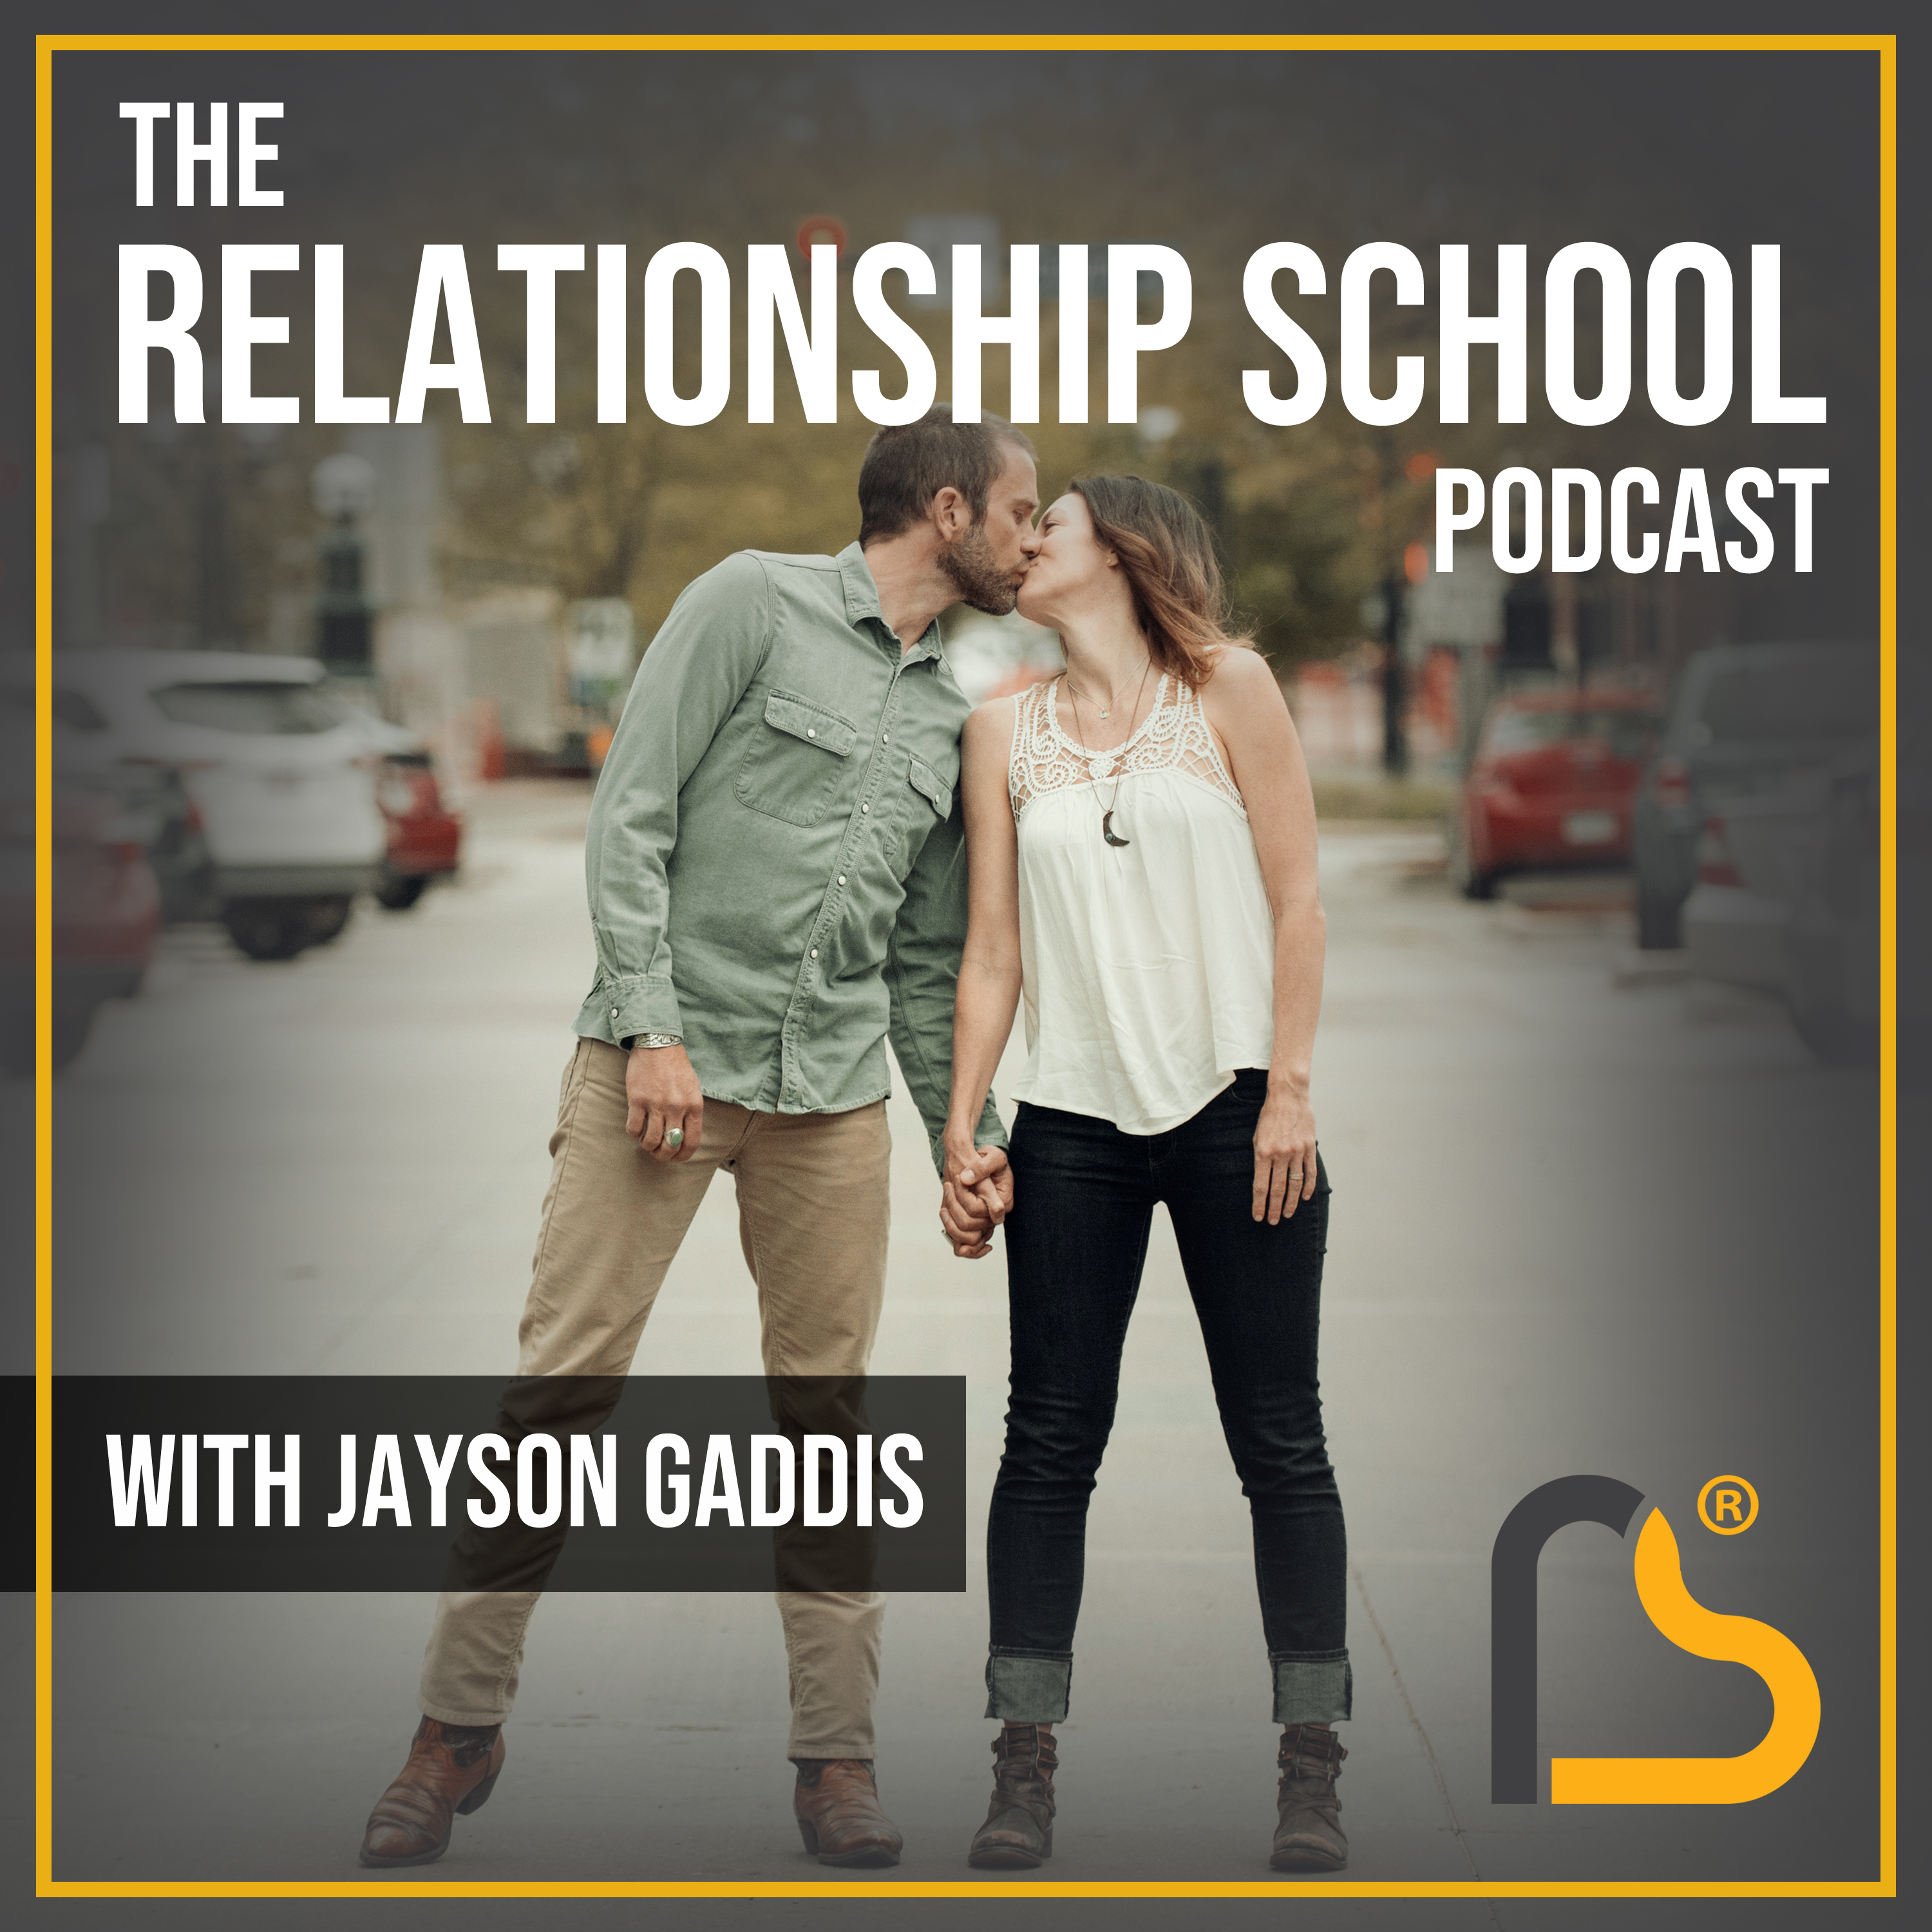 The Relationship School Podcast - The Pro-attachment Satisfaction Cycle - Relationship School Podcast EPISODE 259